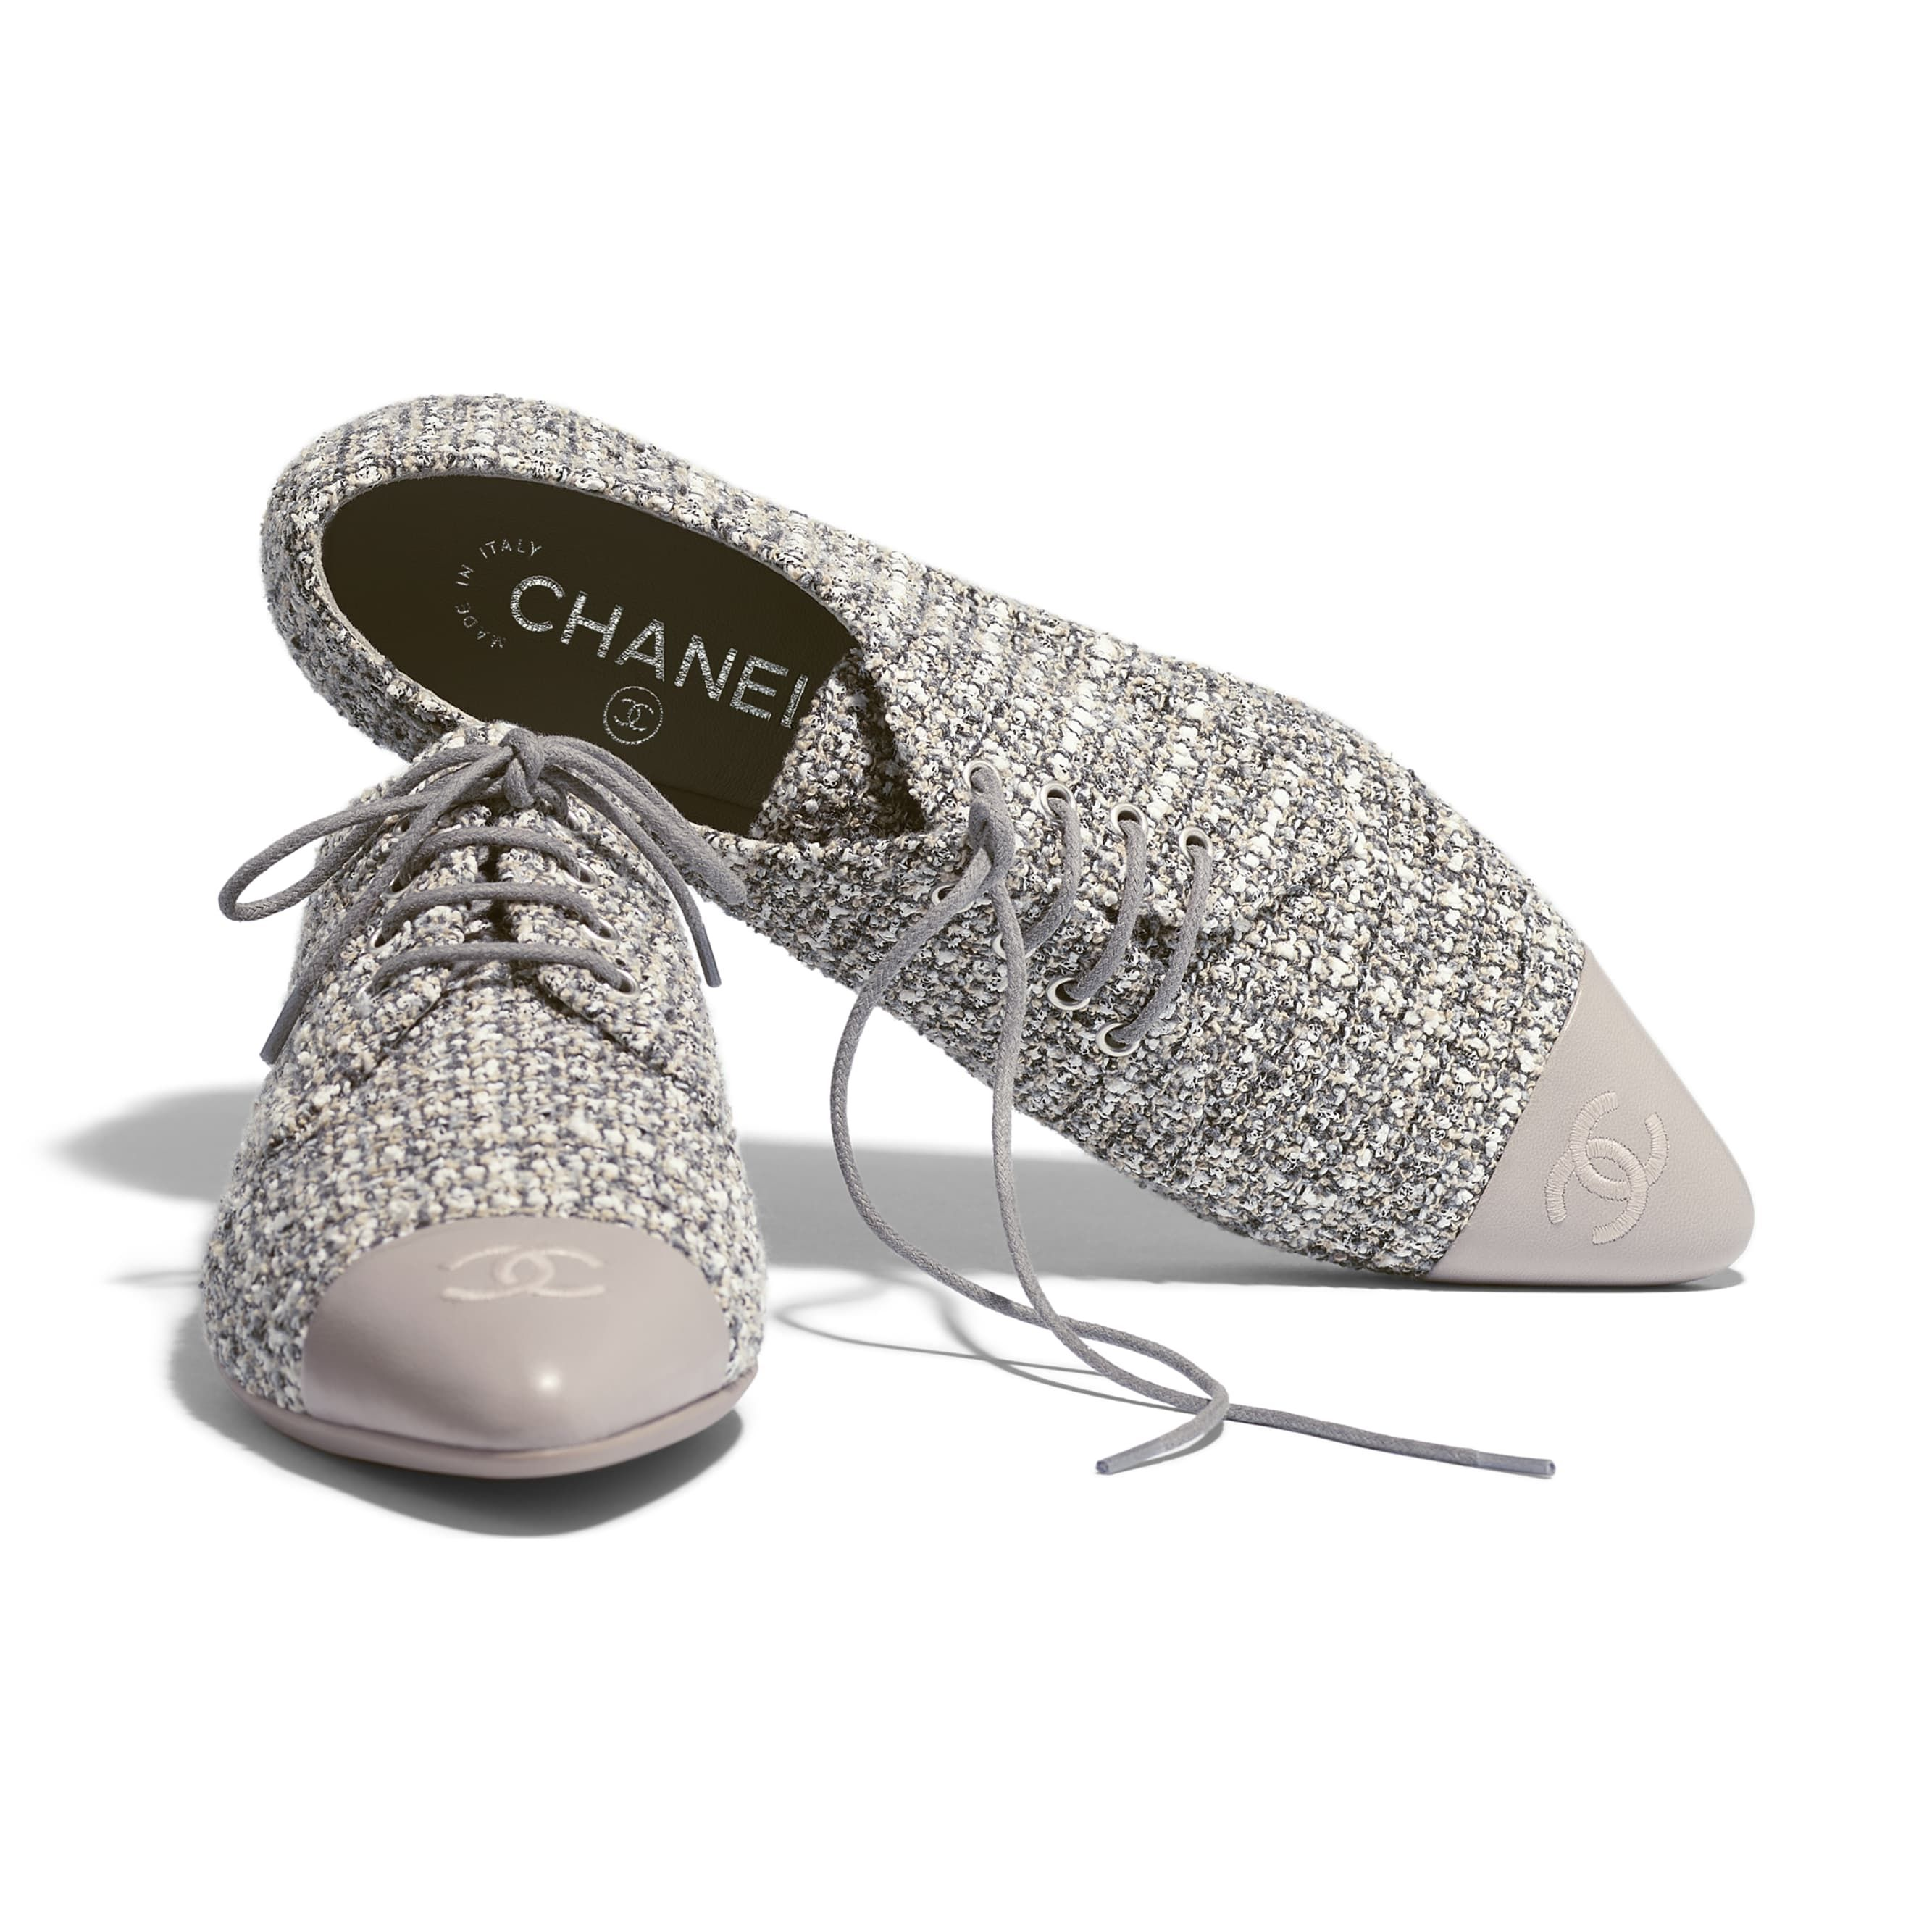 Chanel shoes, Fashion shoes, Luxury shoes